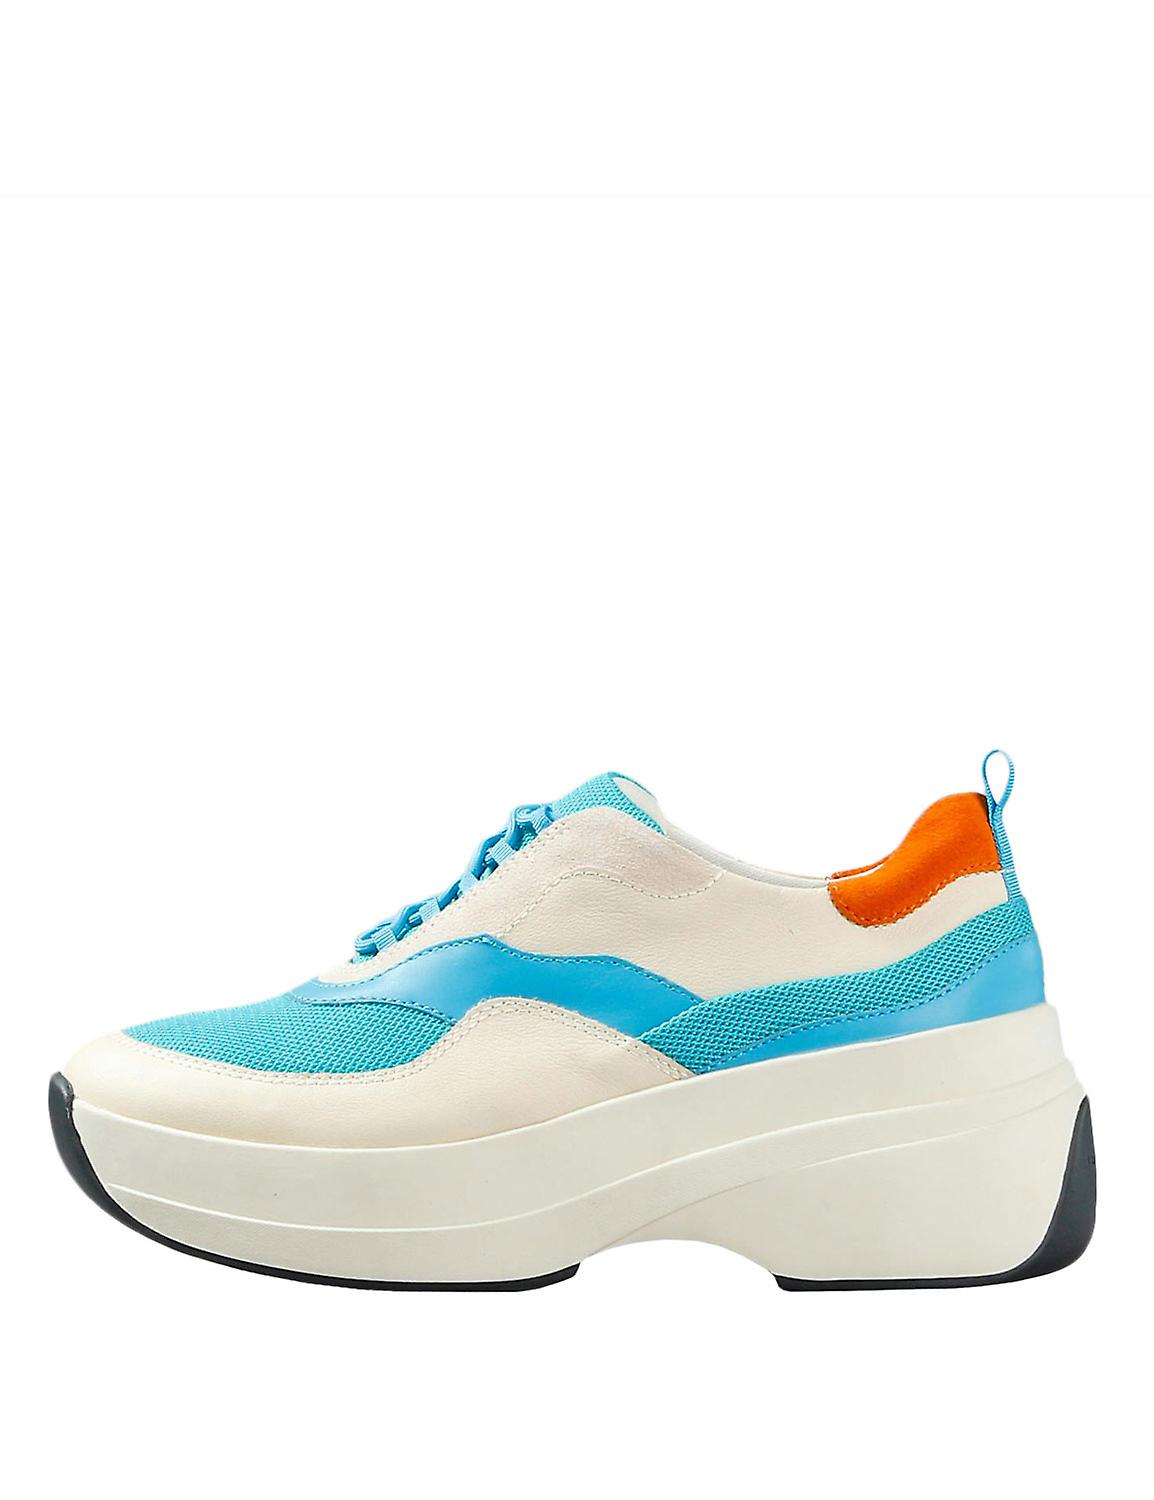 Vagabond Women's Sprint 2.0 Sneakers Leather Off White-Blue nPSpx